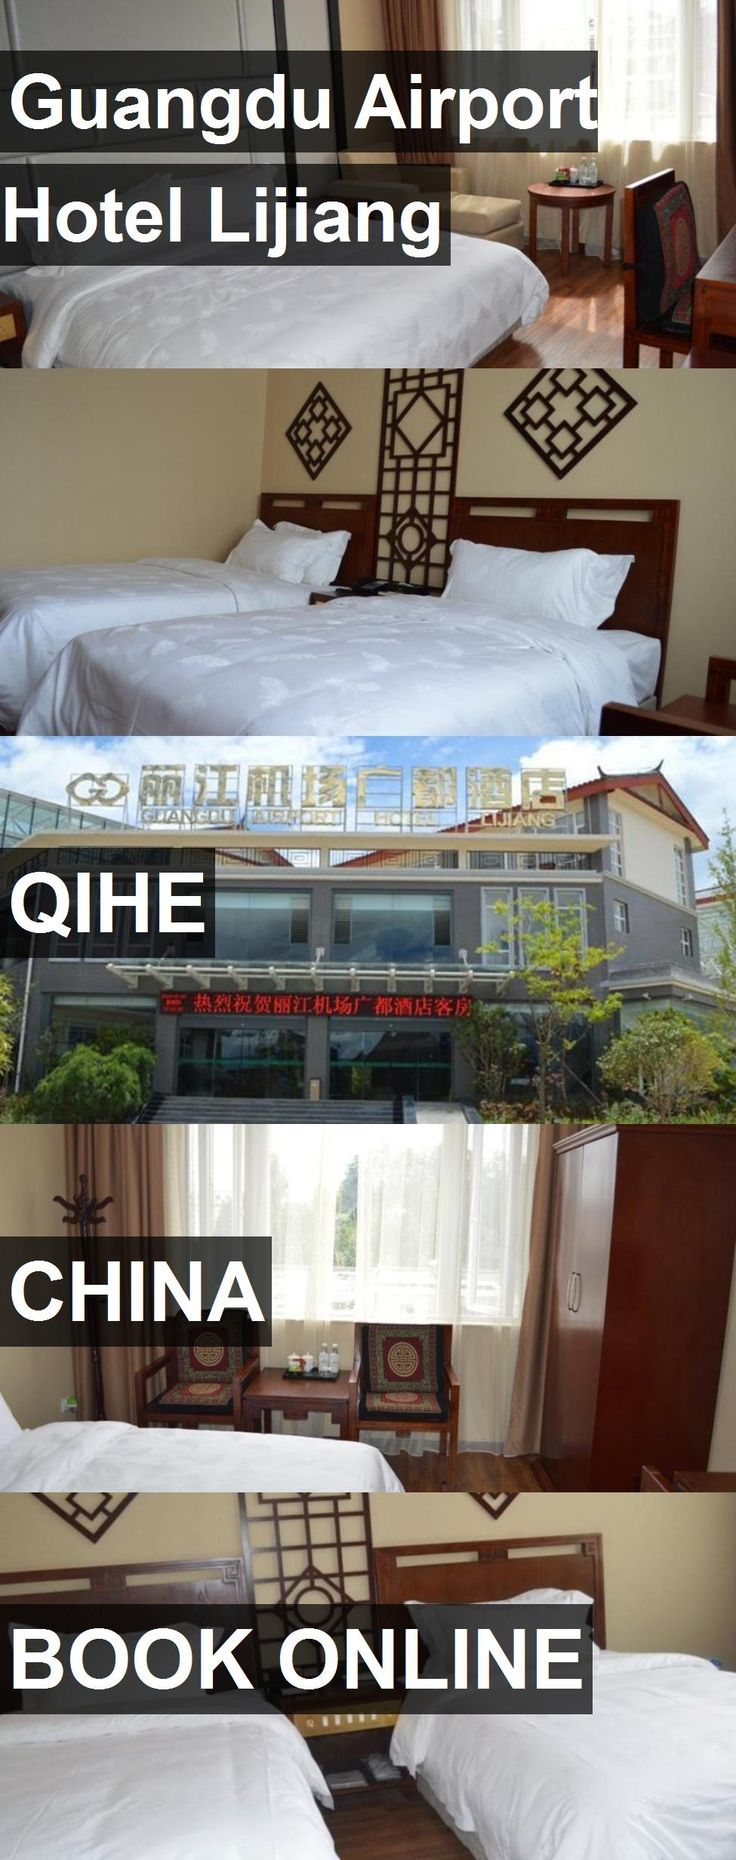 Guangdu Airport Hotel Lijiang in Qihe, China. For more information, photos, reviews and best prices please follow the link. #China #Qihe #travel #vacation #hotel